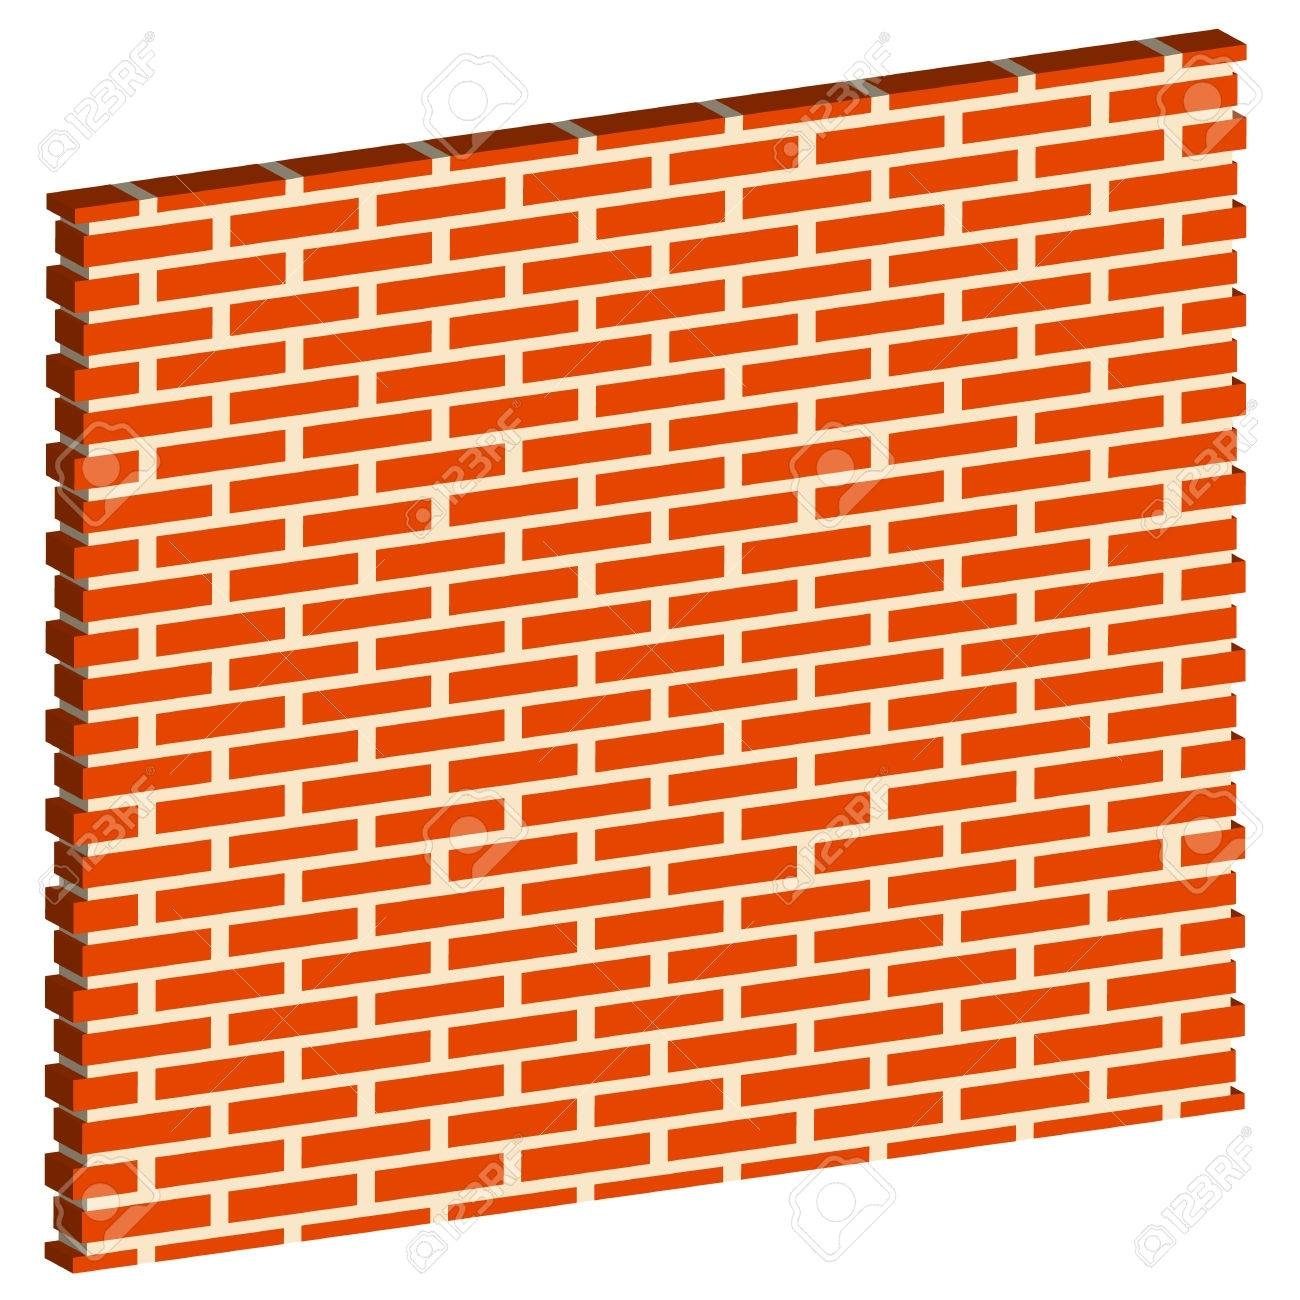 3D Clipart Brick Wall – Pencil And In Color 3D Clipart Brick Wall In 2018 3D Brick Wall Art (View 3 of 20)